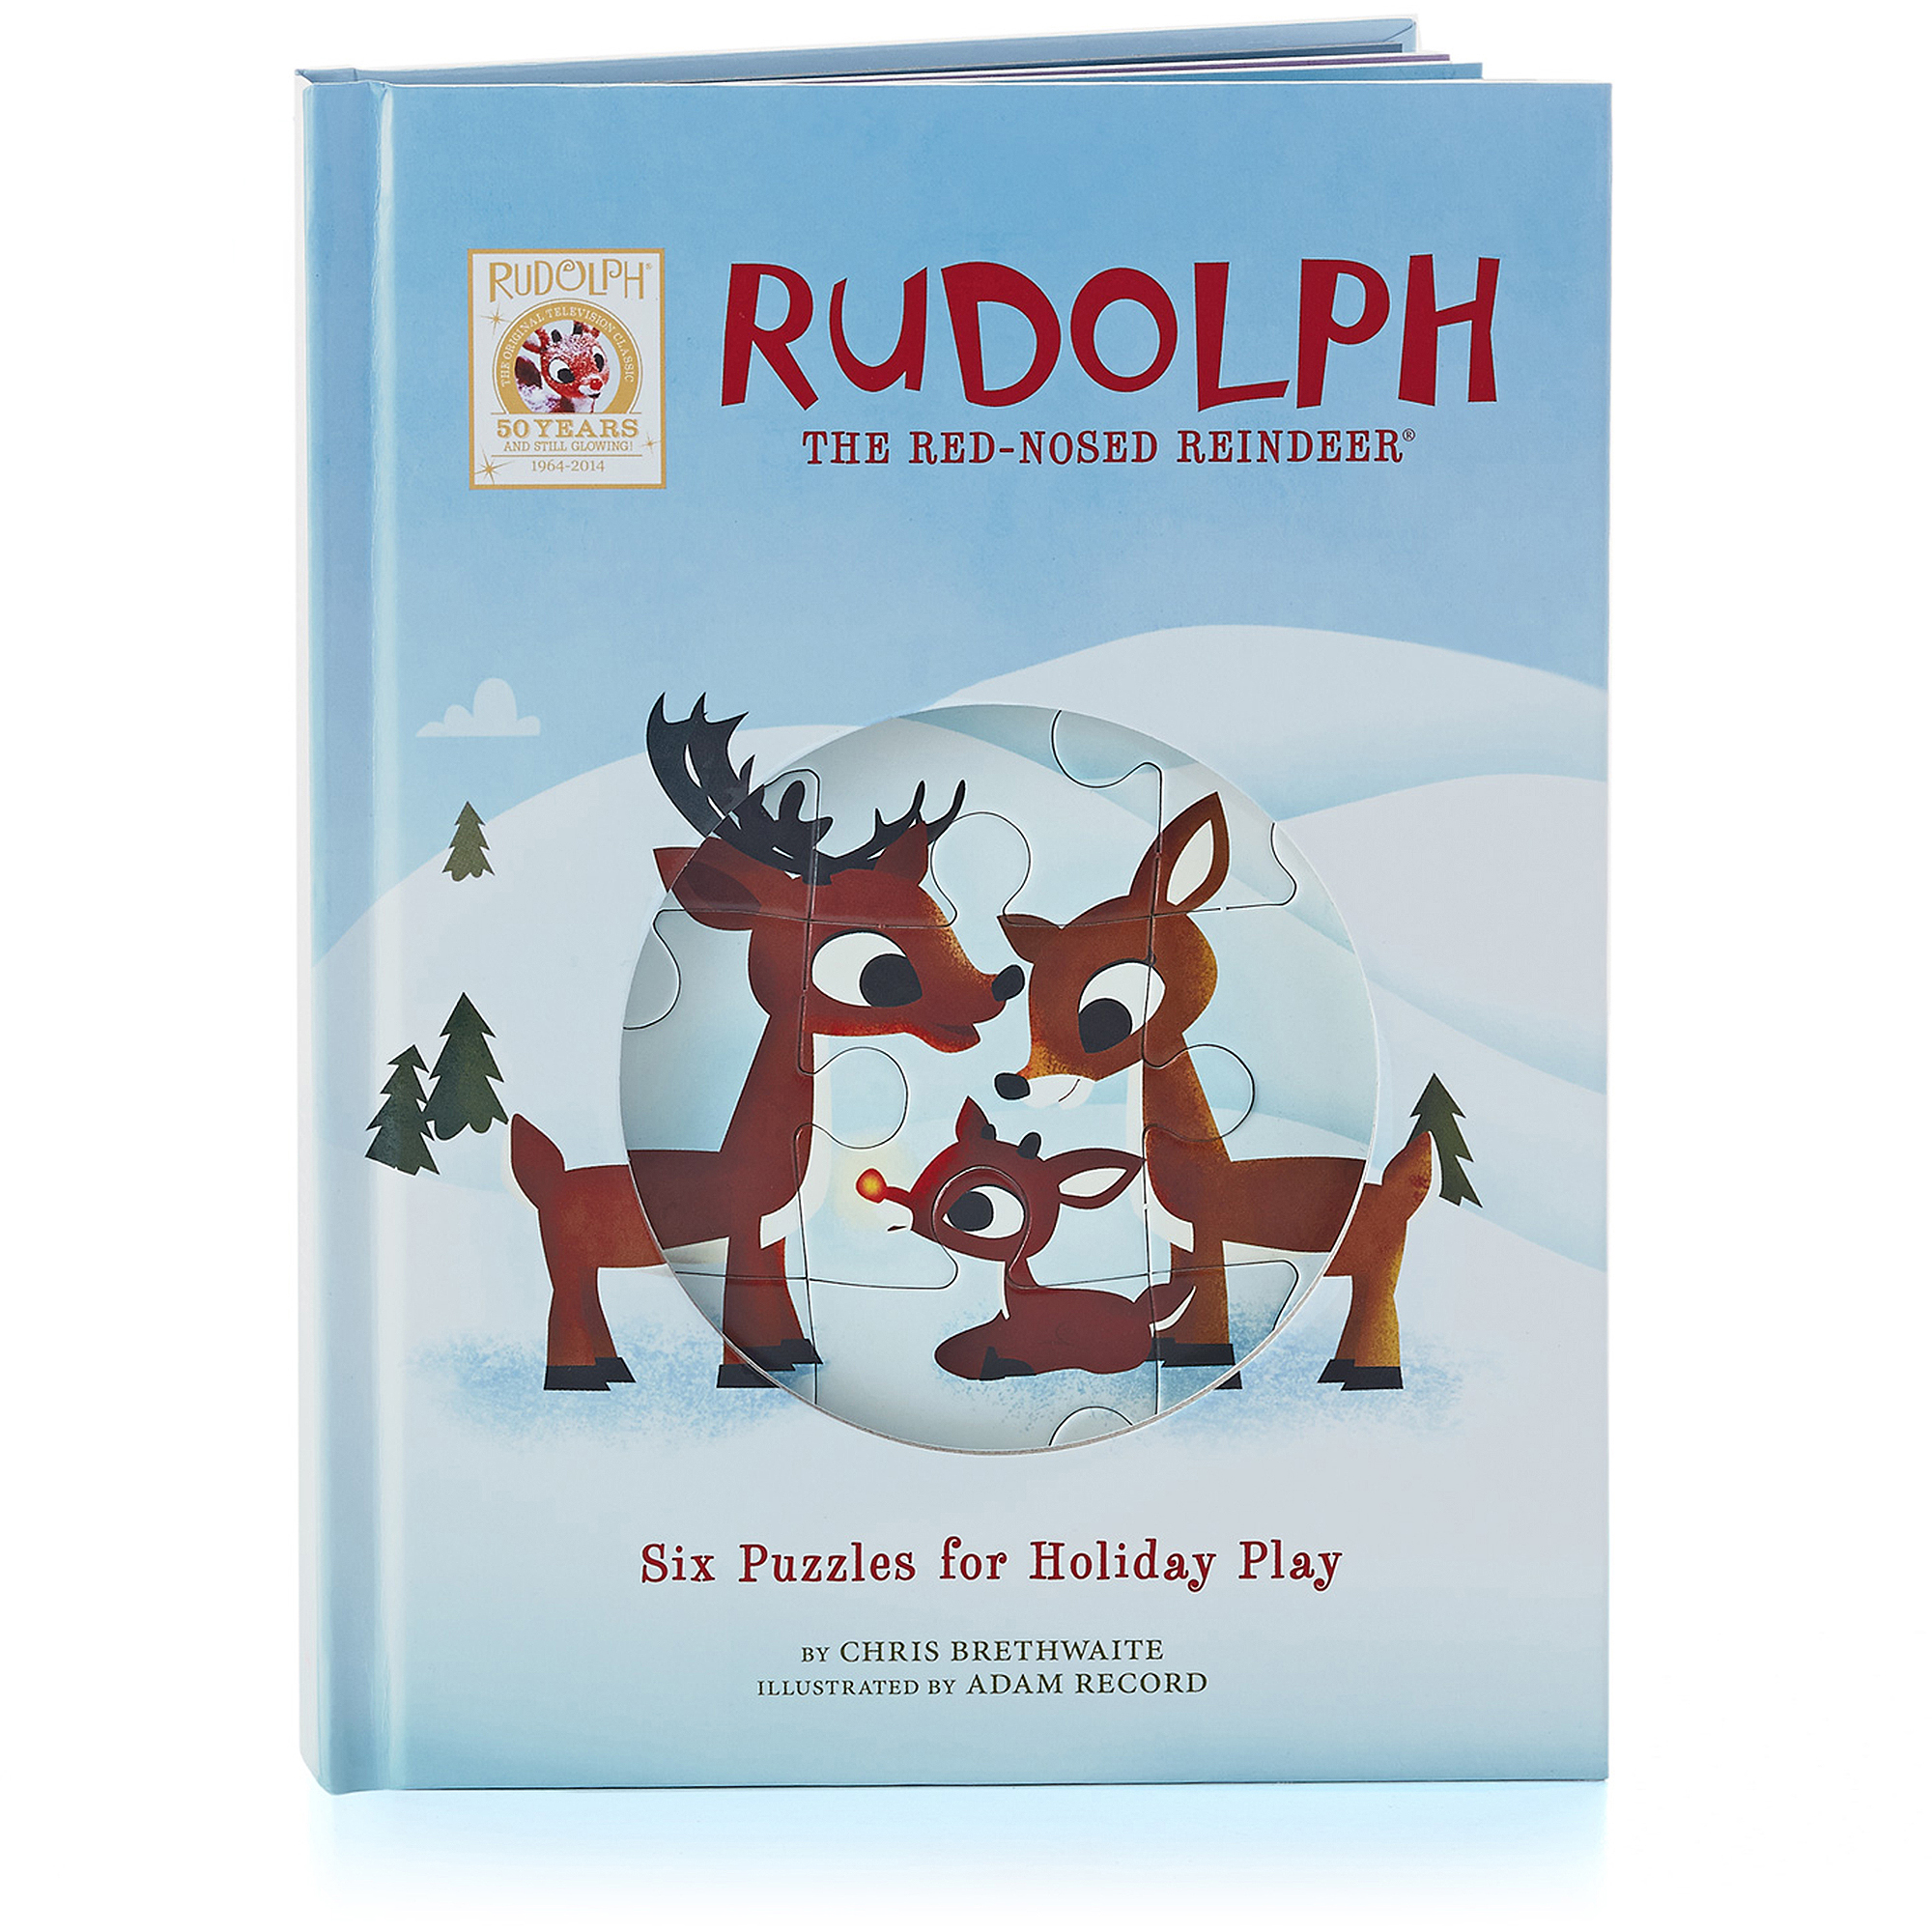 Hallmark Rudolph the Red-Nosed Reindeer Puzzle Book